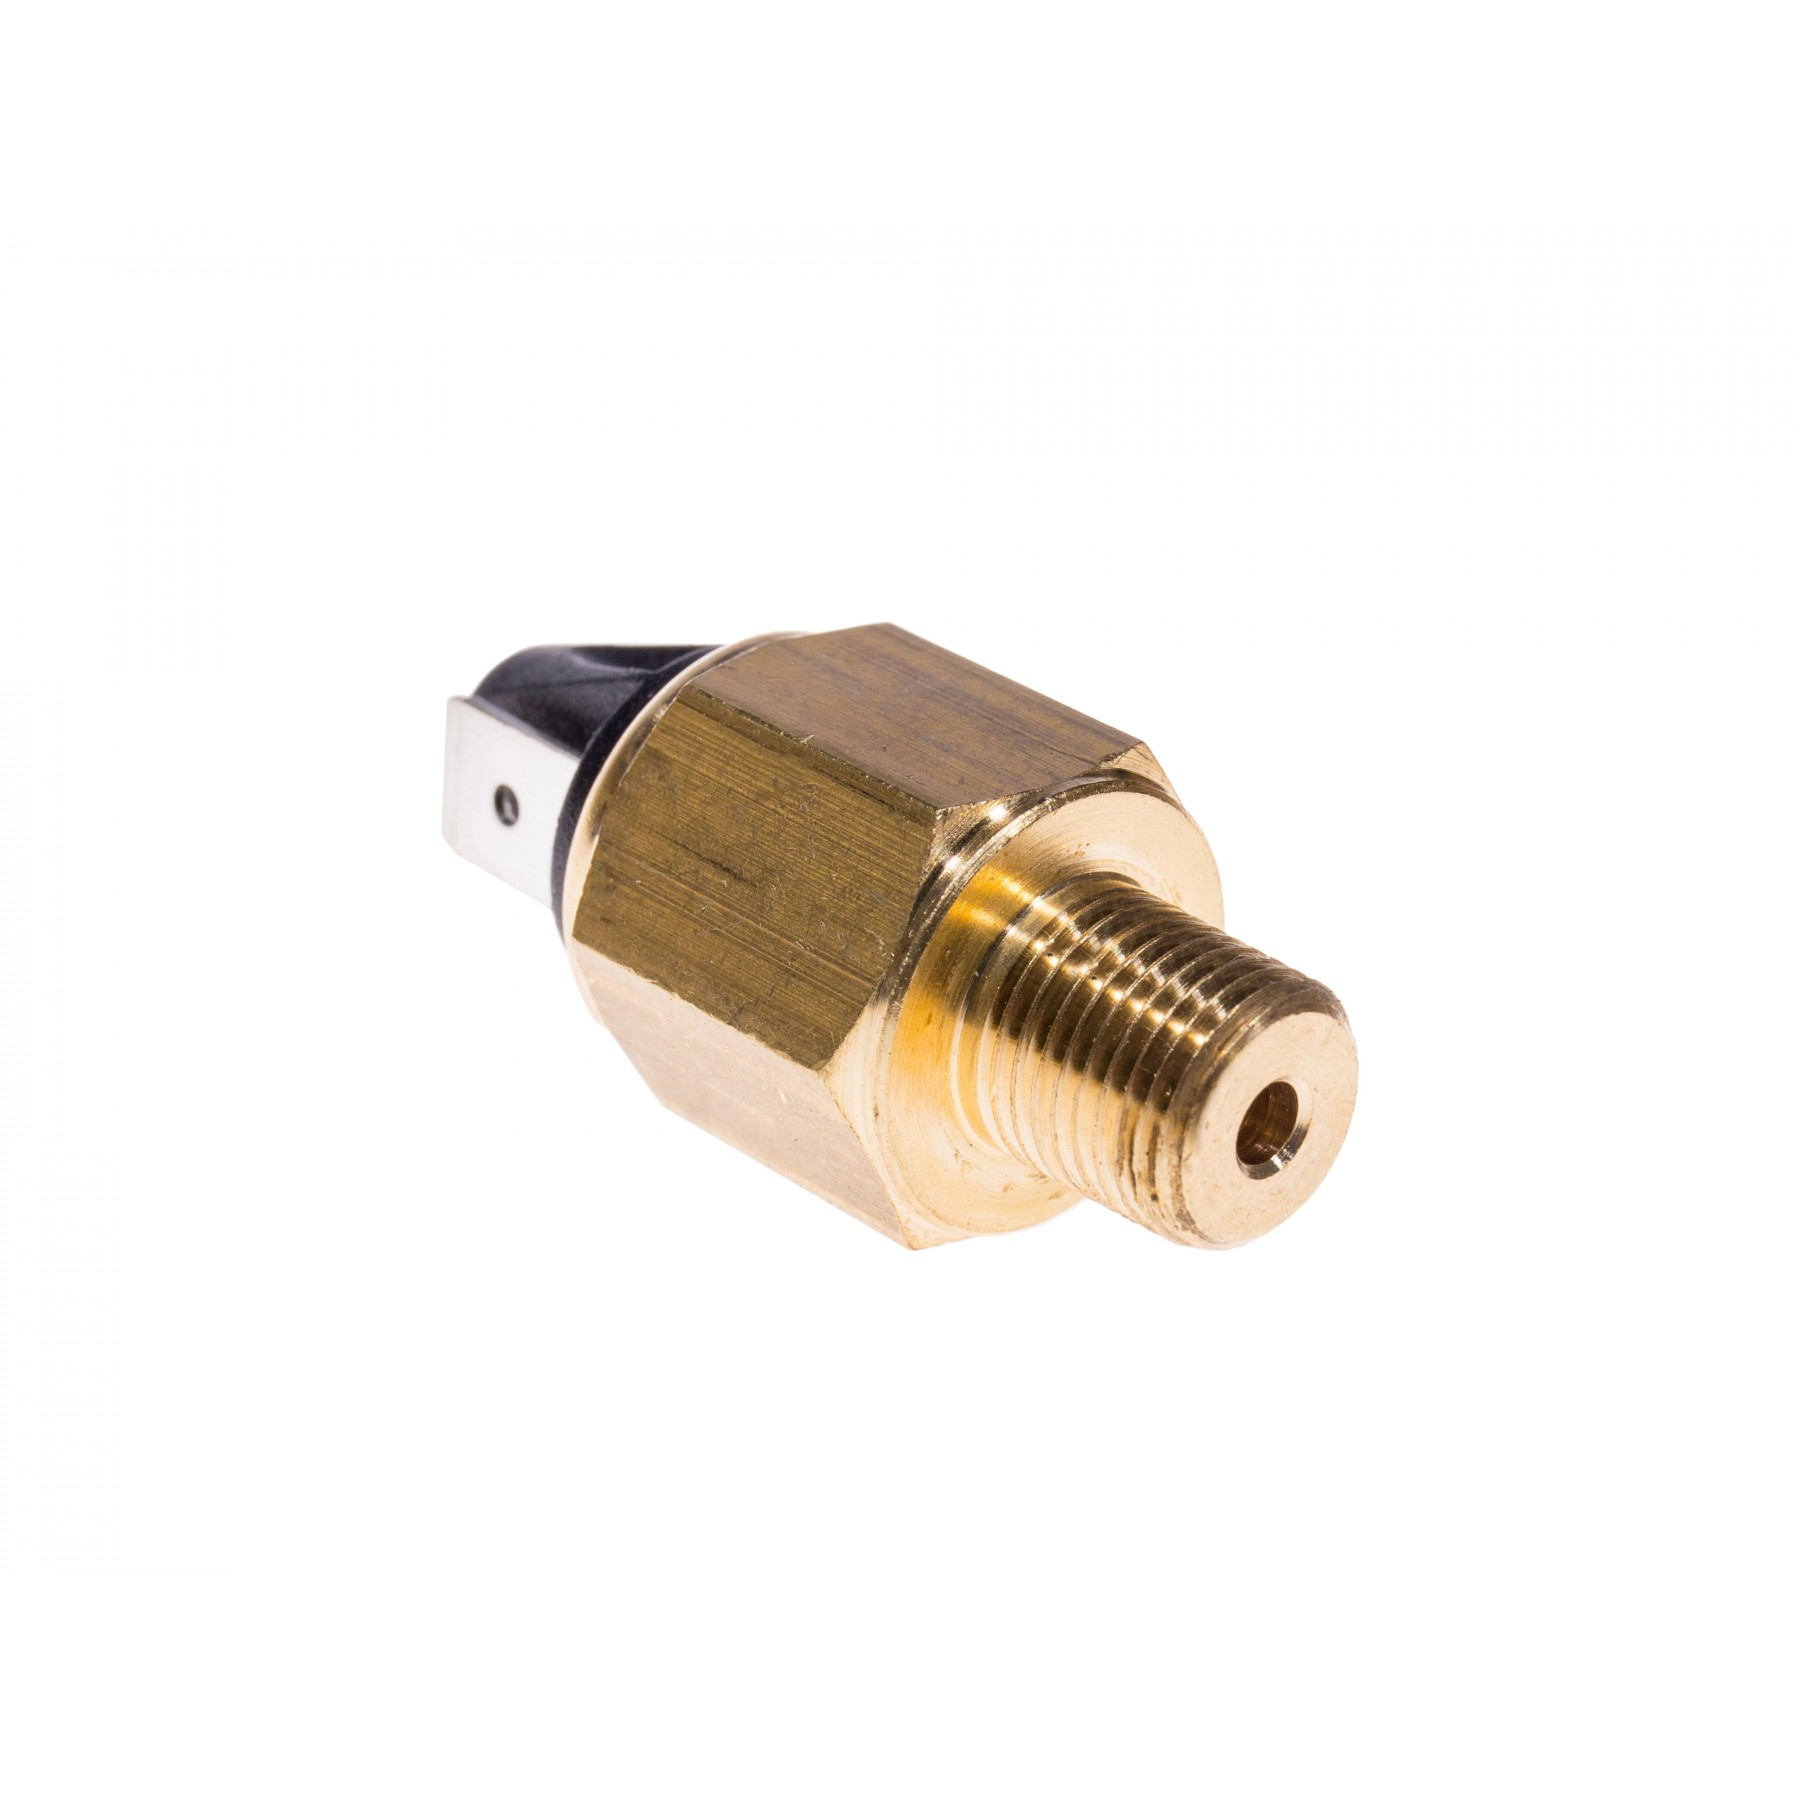 ADJUSTABLE OIL PRESSURE SWITCH